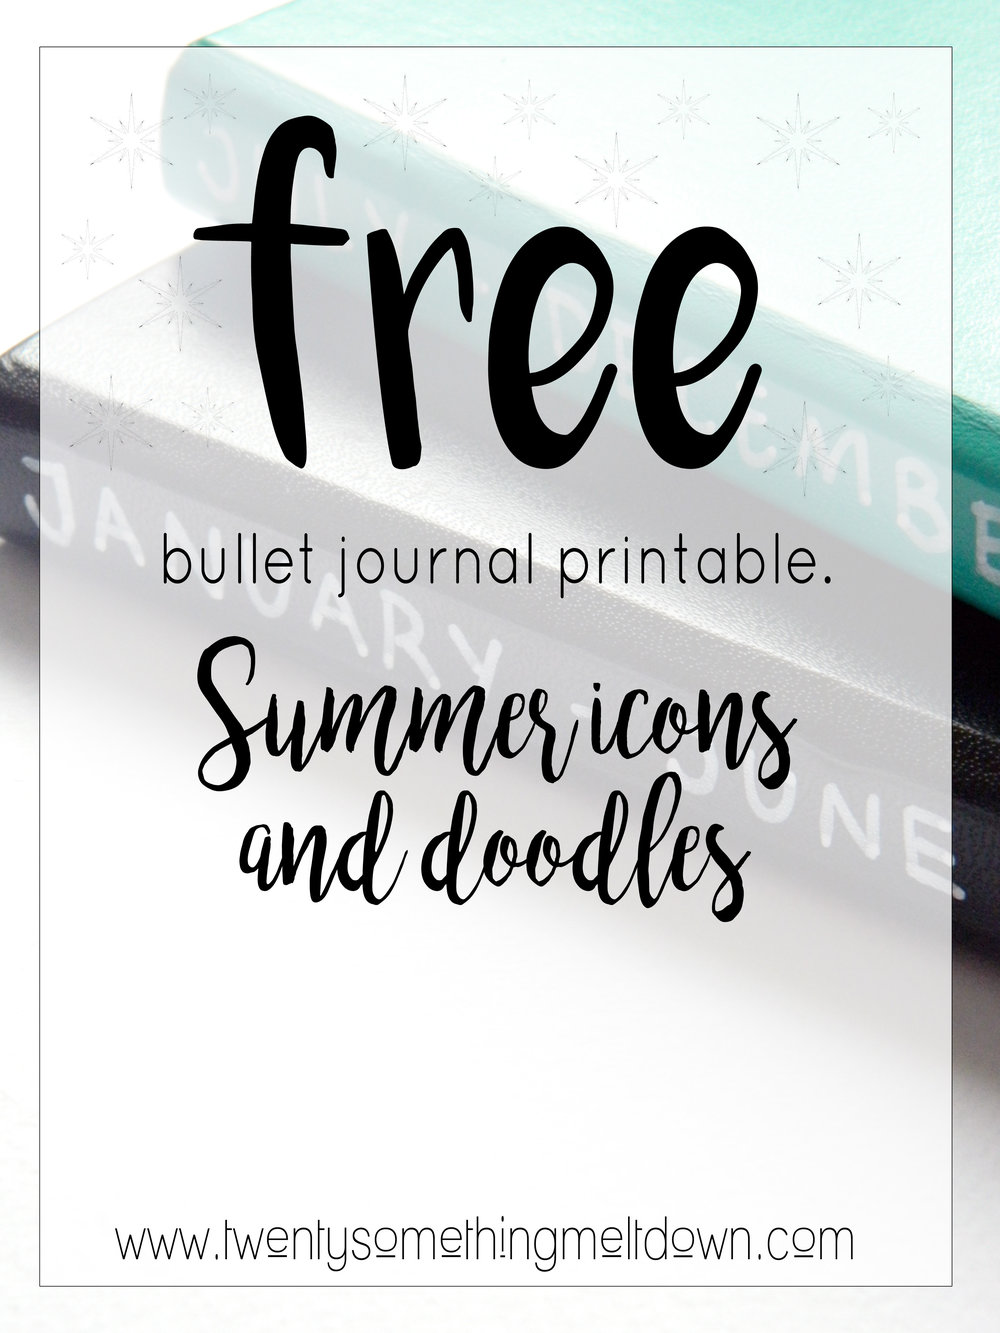 Free bullet journal printable, summer icons.